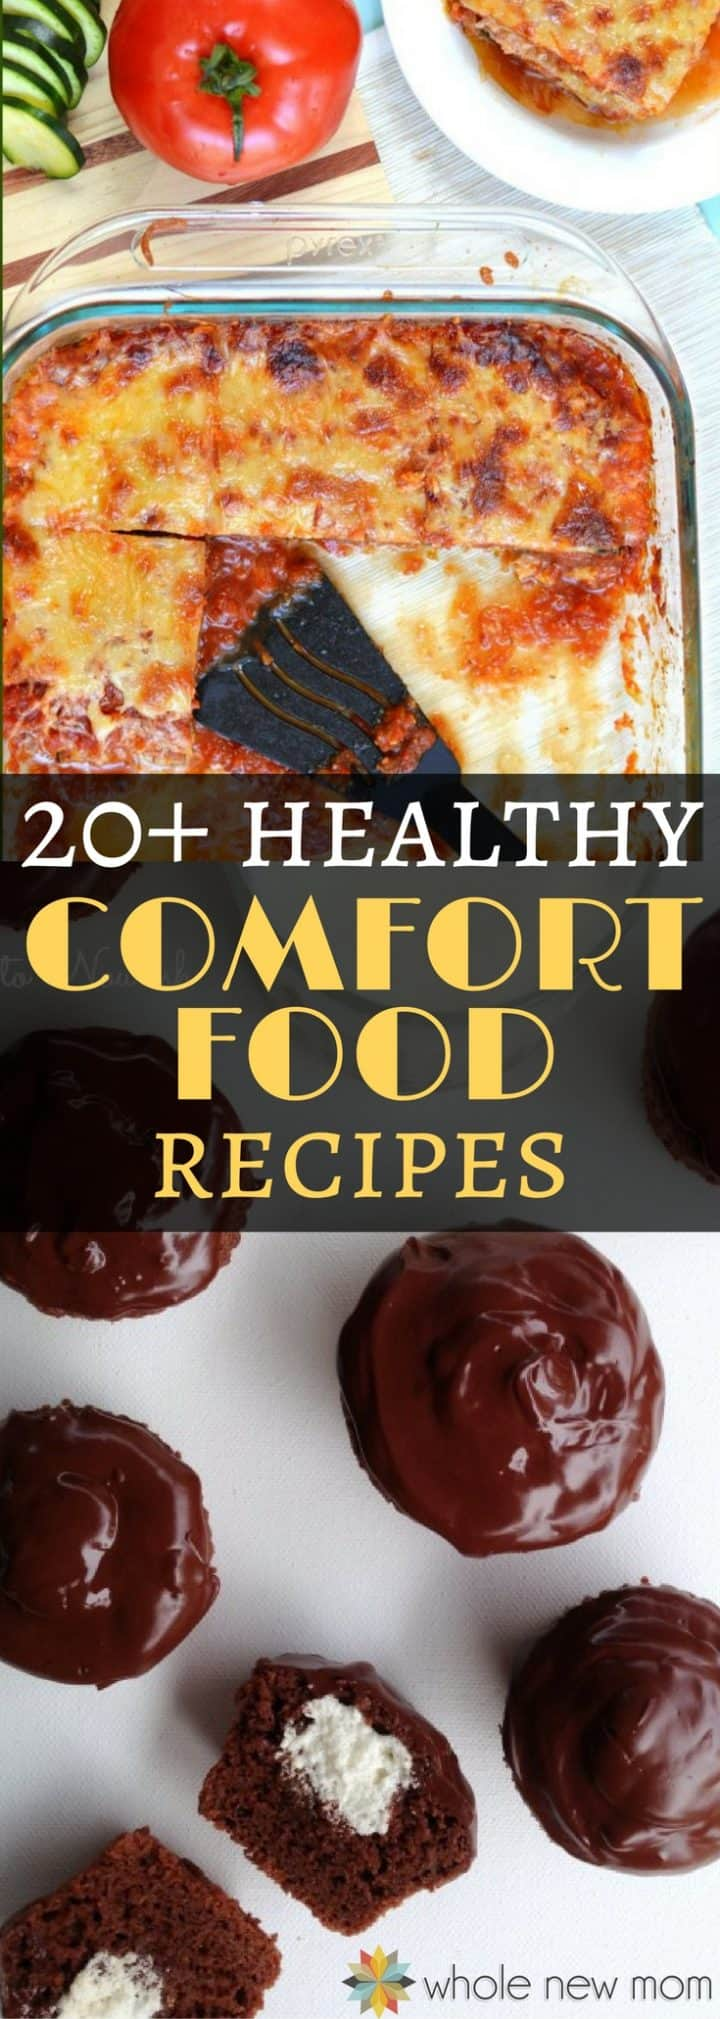 Healthy Comfort Food Recipes - gluten-free